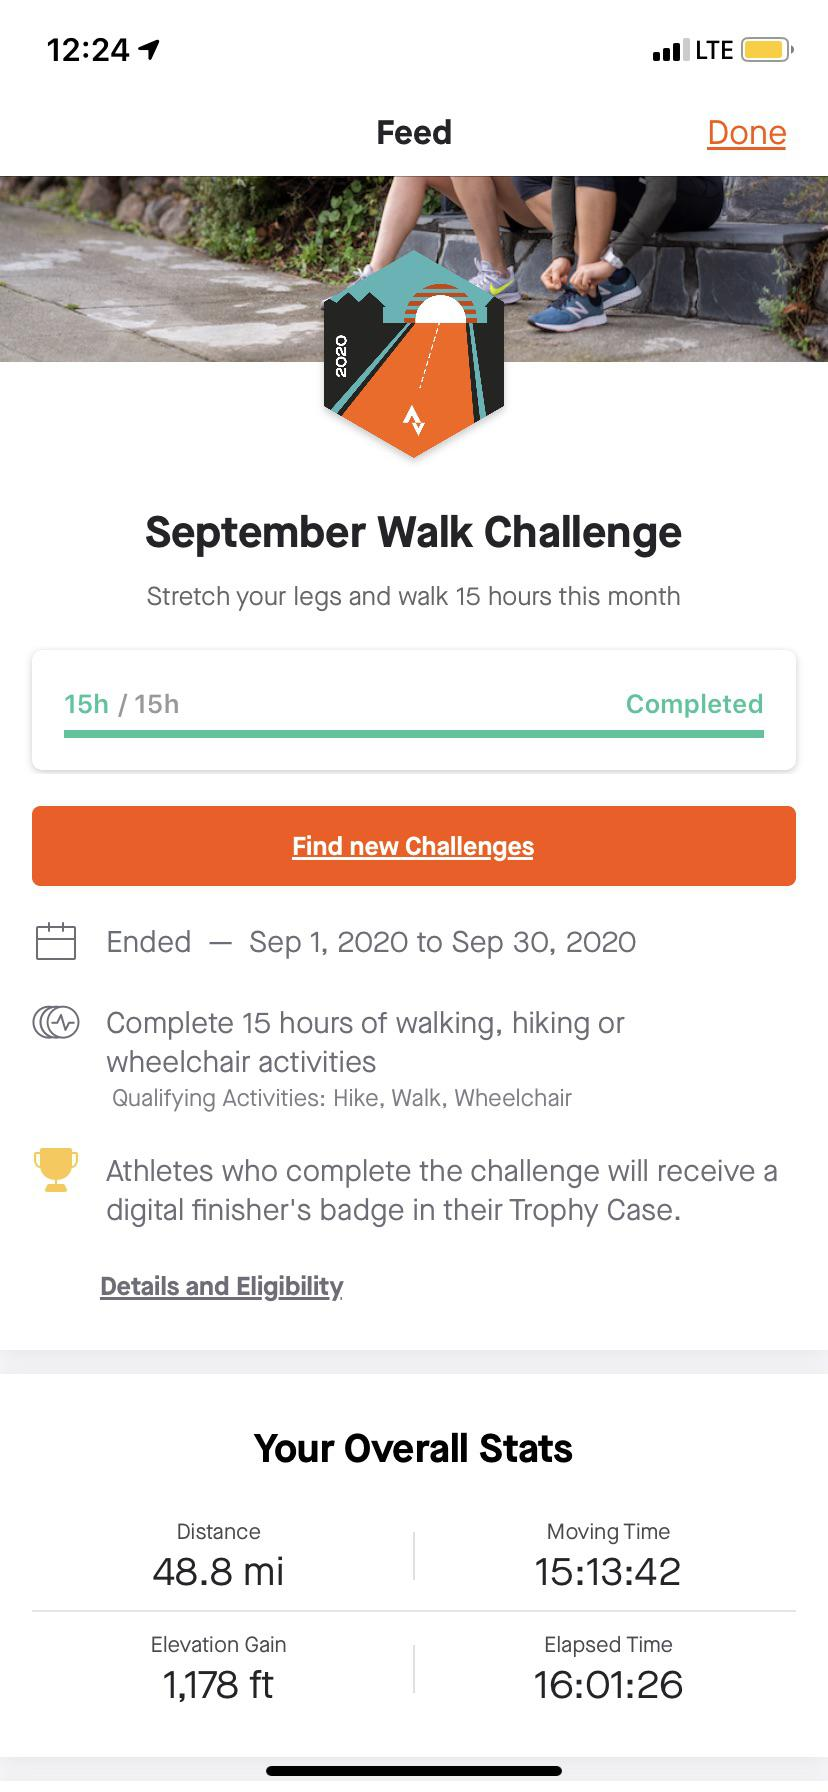 [Image] Decided to start tracking how much I walk in August, the app I use had a walking challenge for the month of September and I finished it! Baby steps to getting healthy and feeling good.